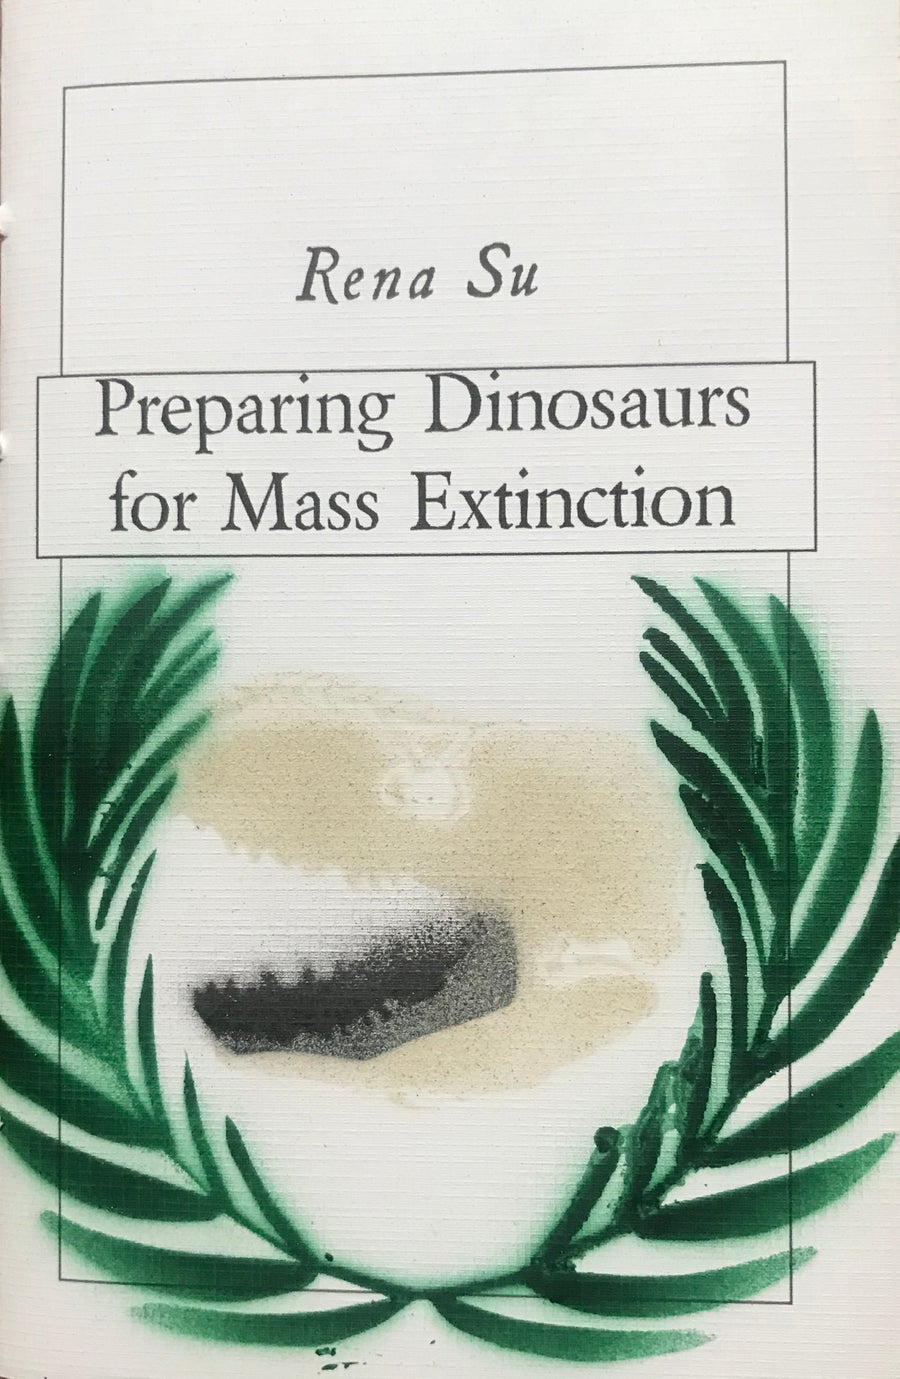 """Image of """"Preparing Dinosaurs for Mass Extinction"""" by Rena Su"""